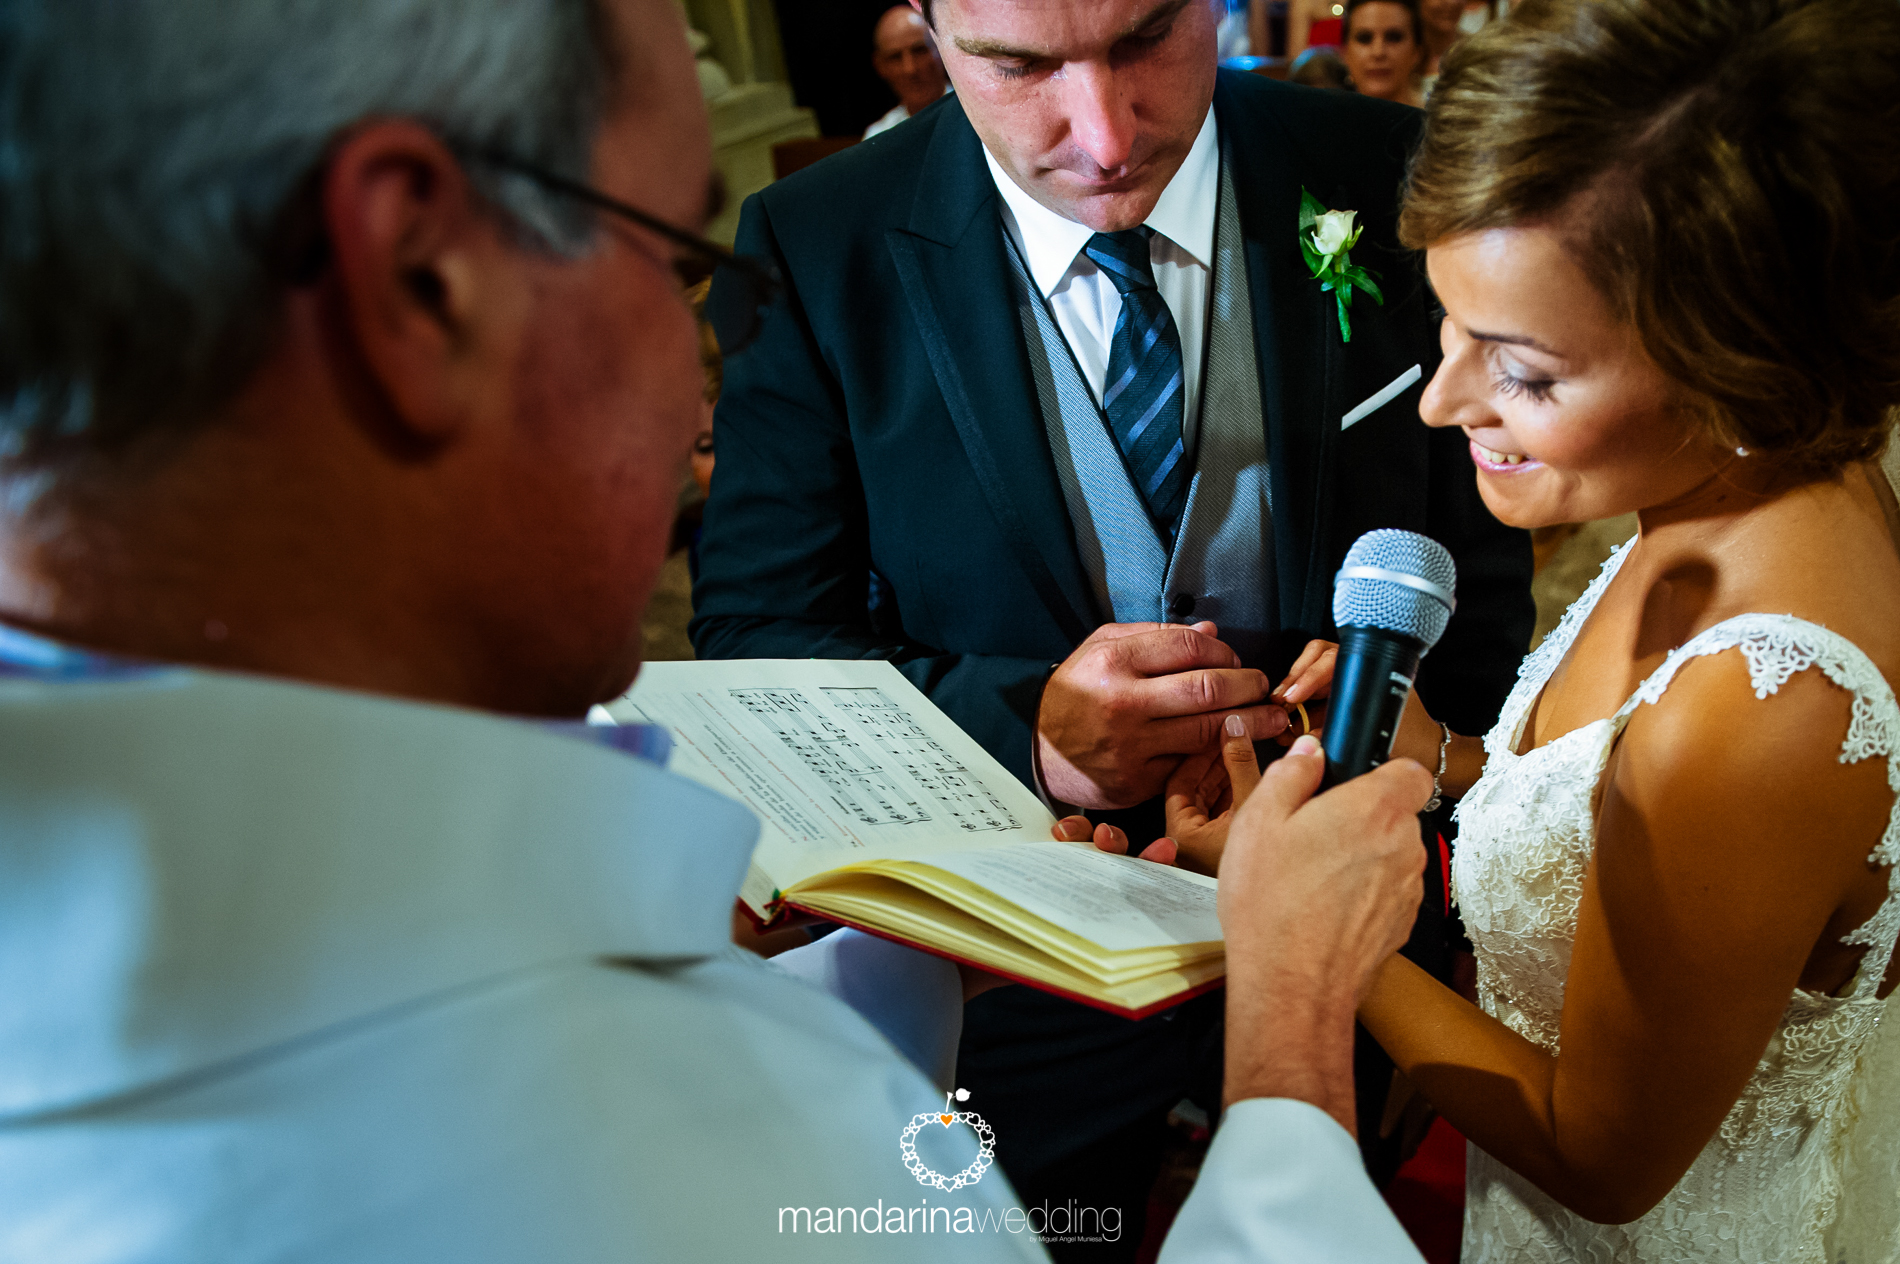 mandarina wedding_20